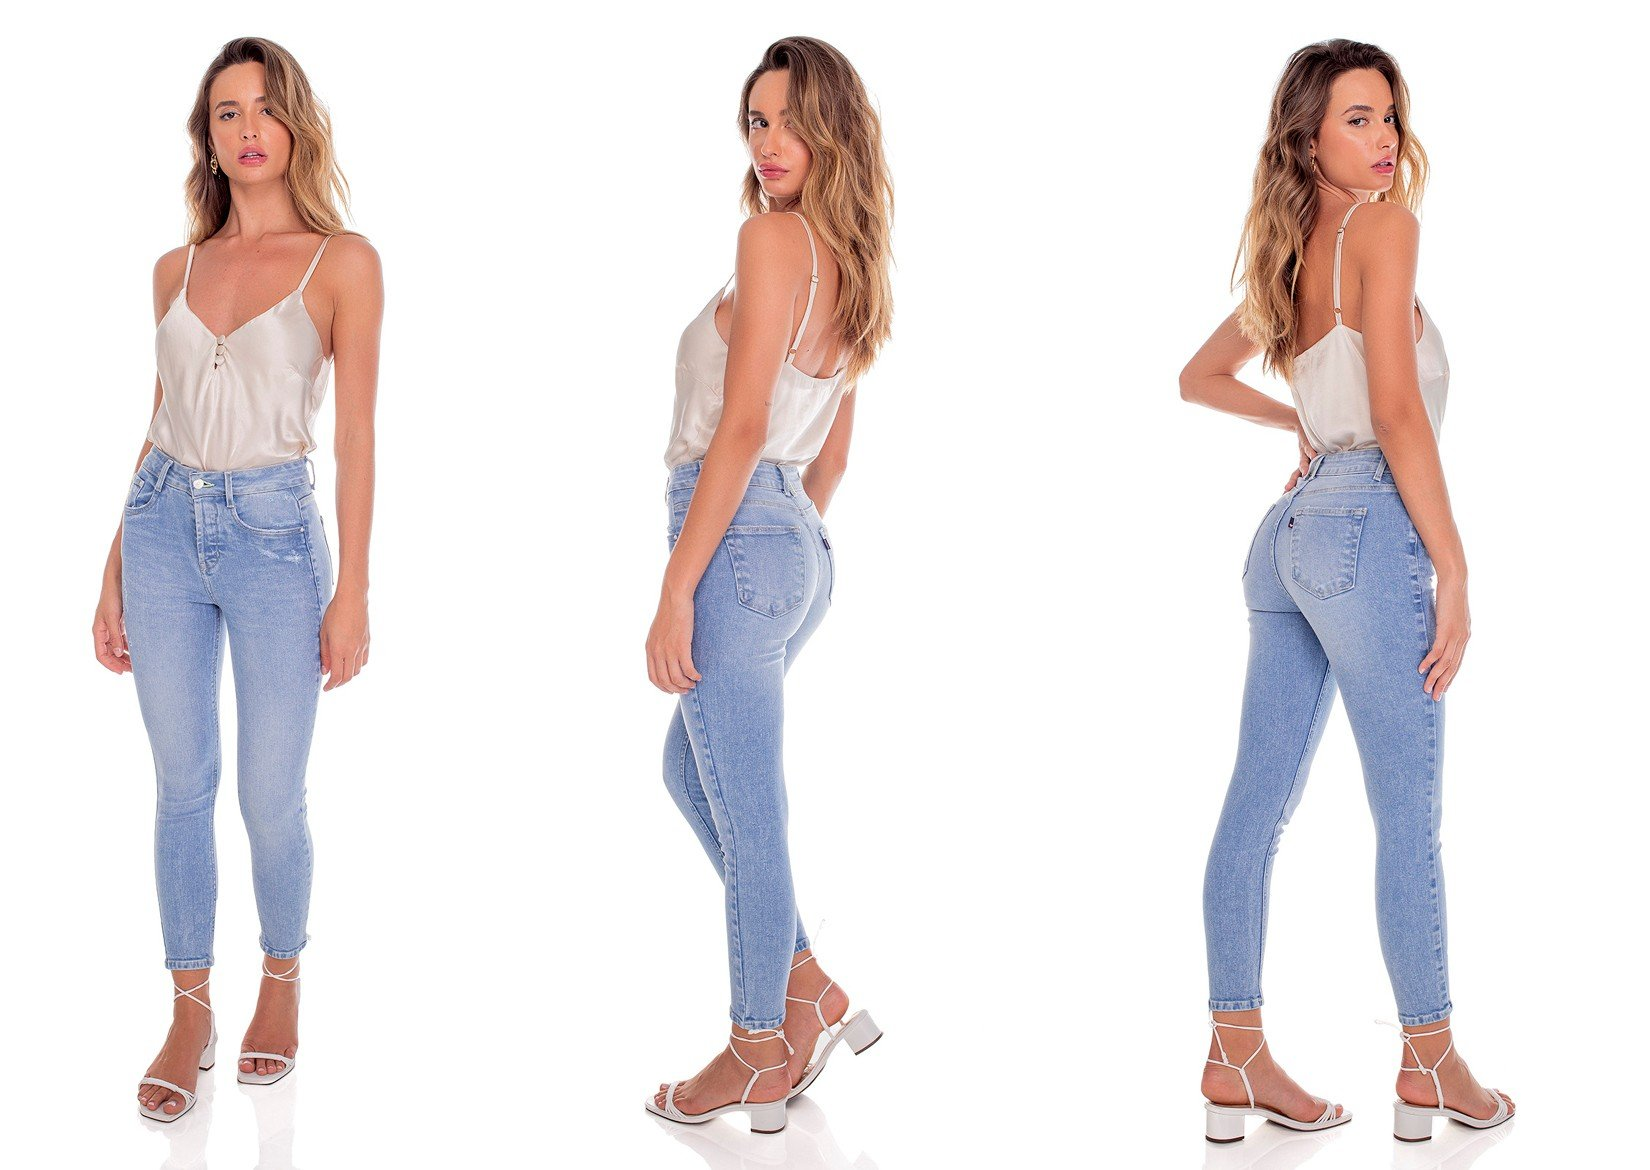 dz3608 re calca jeans feminina skinny media cropped fechamento de botoes denim zero tripla